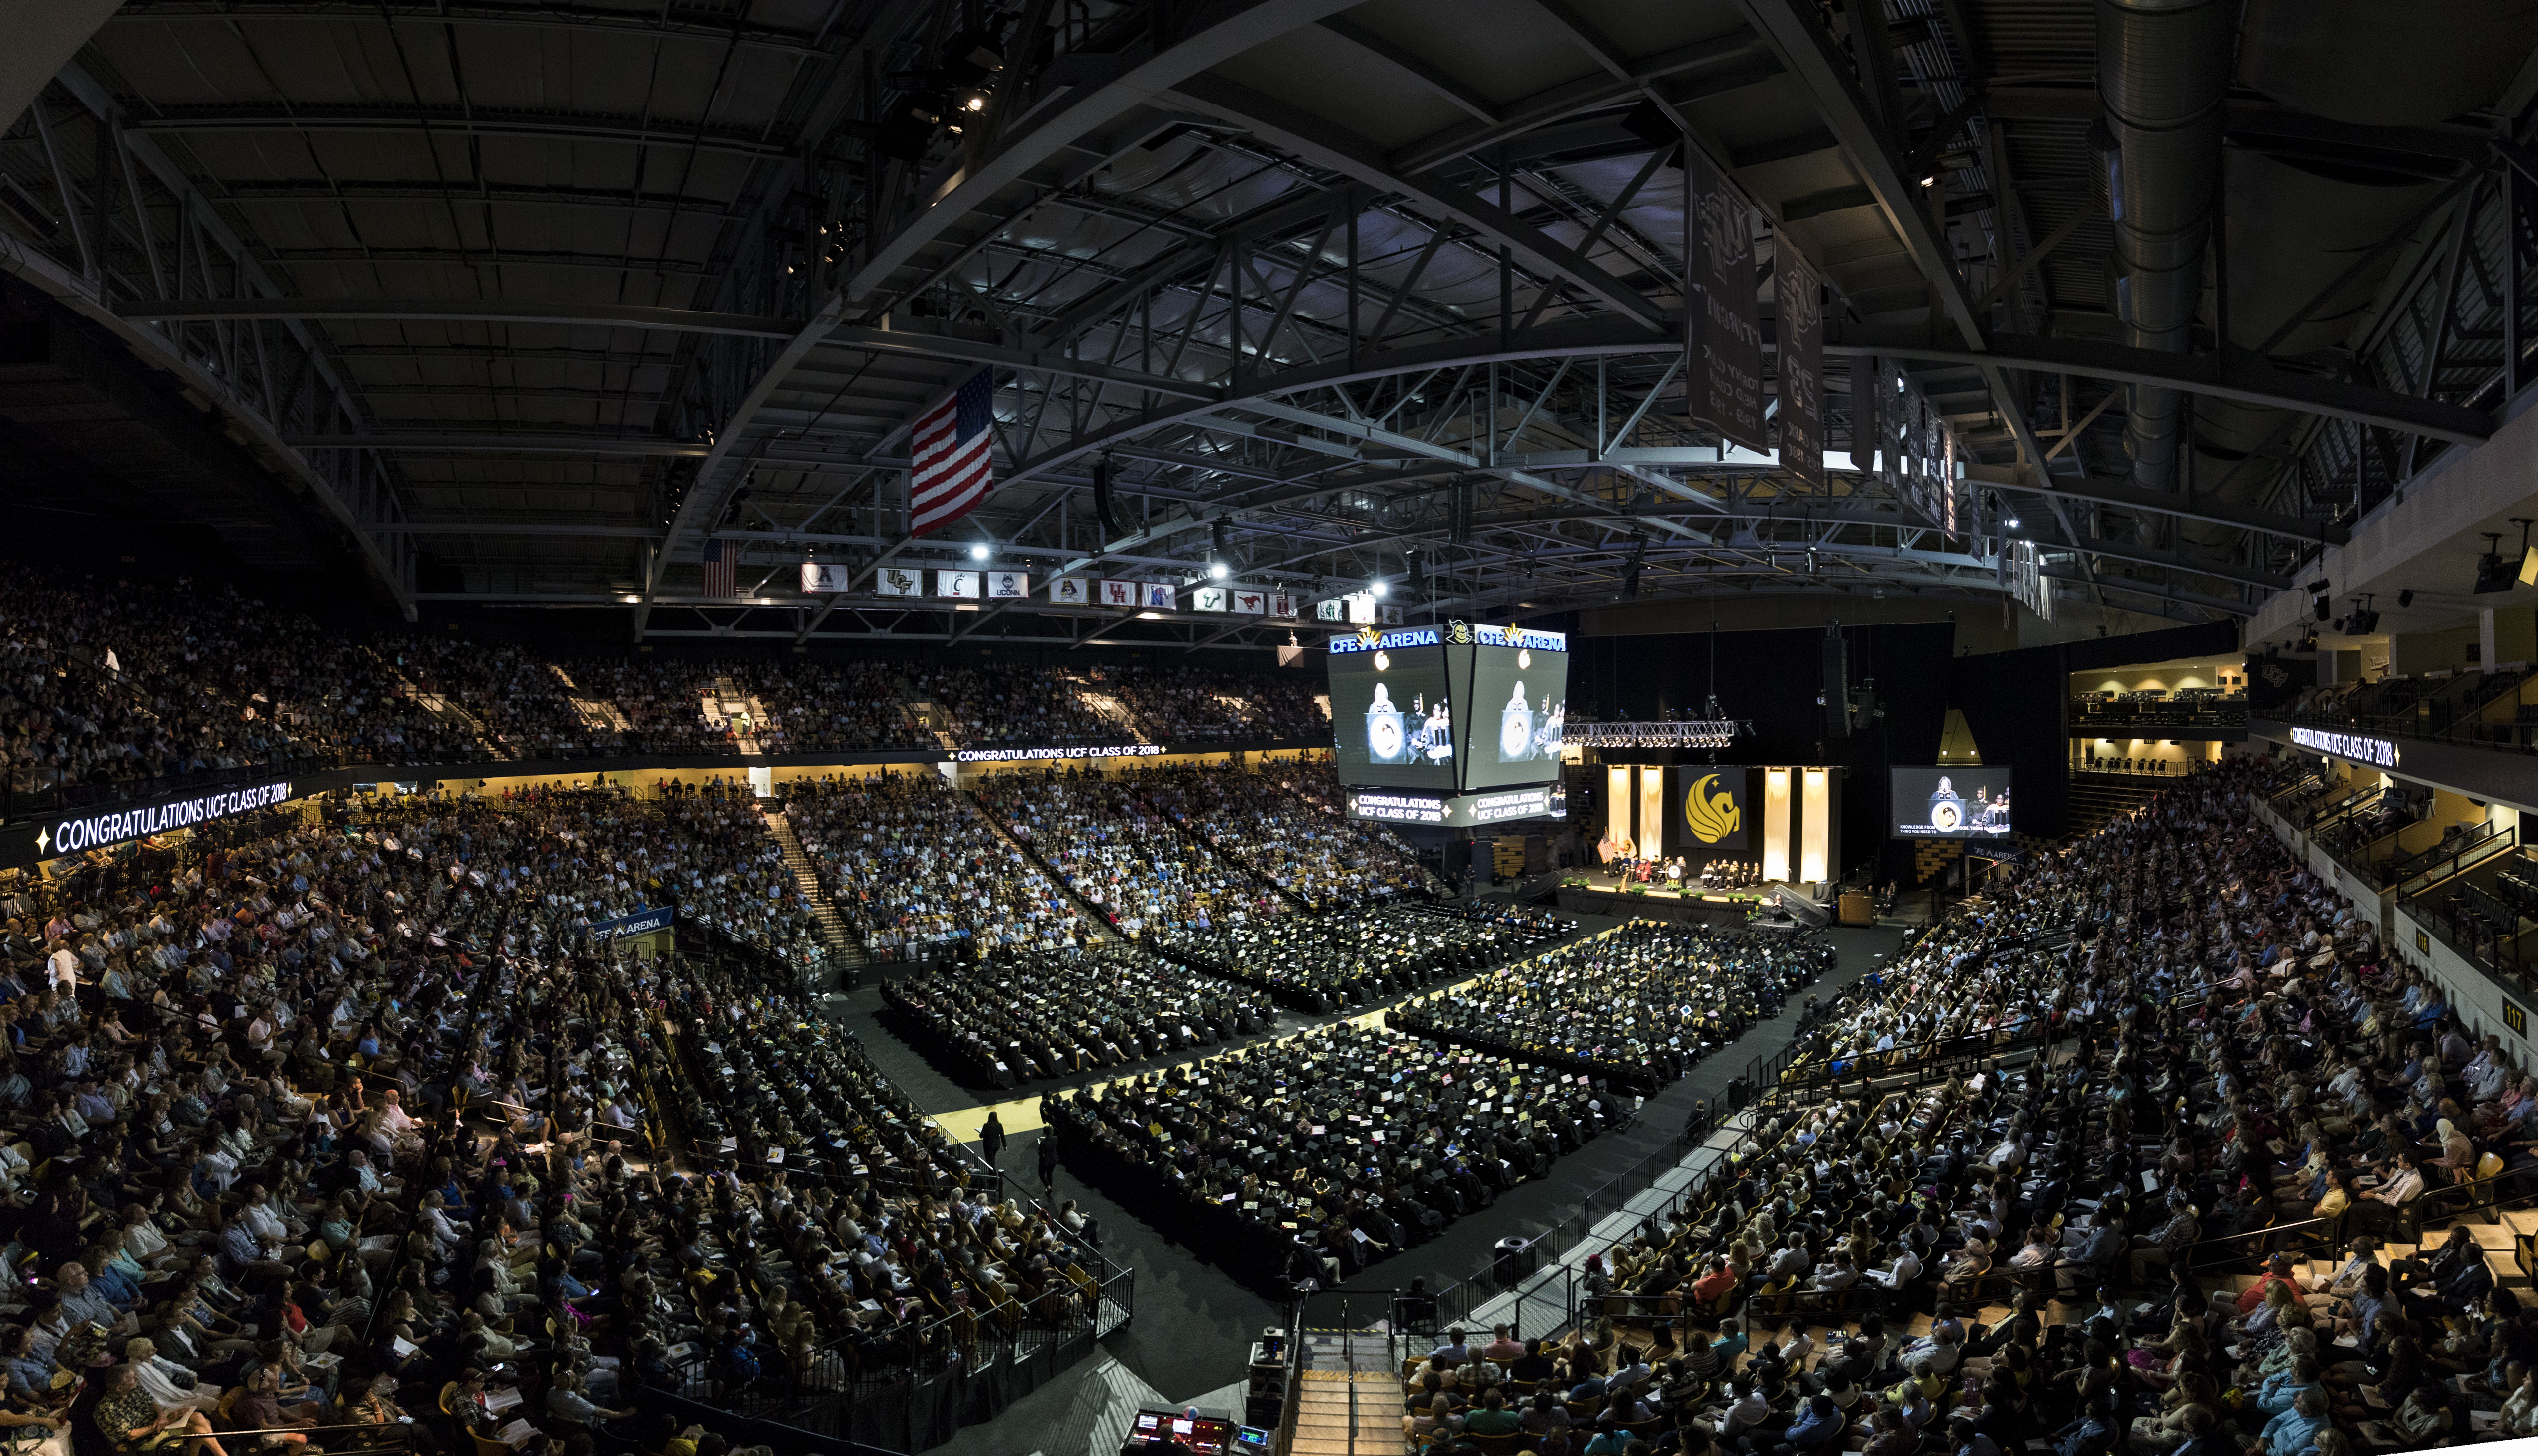 A wide shot displays the crowded CFE Arena.